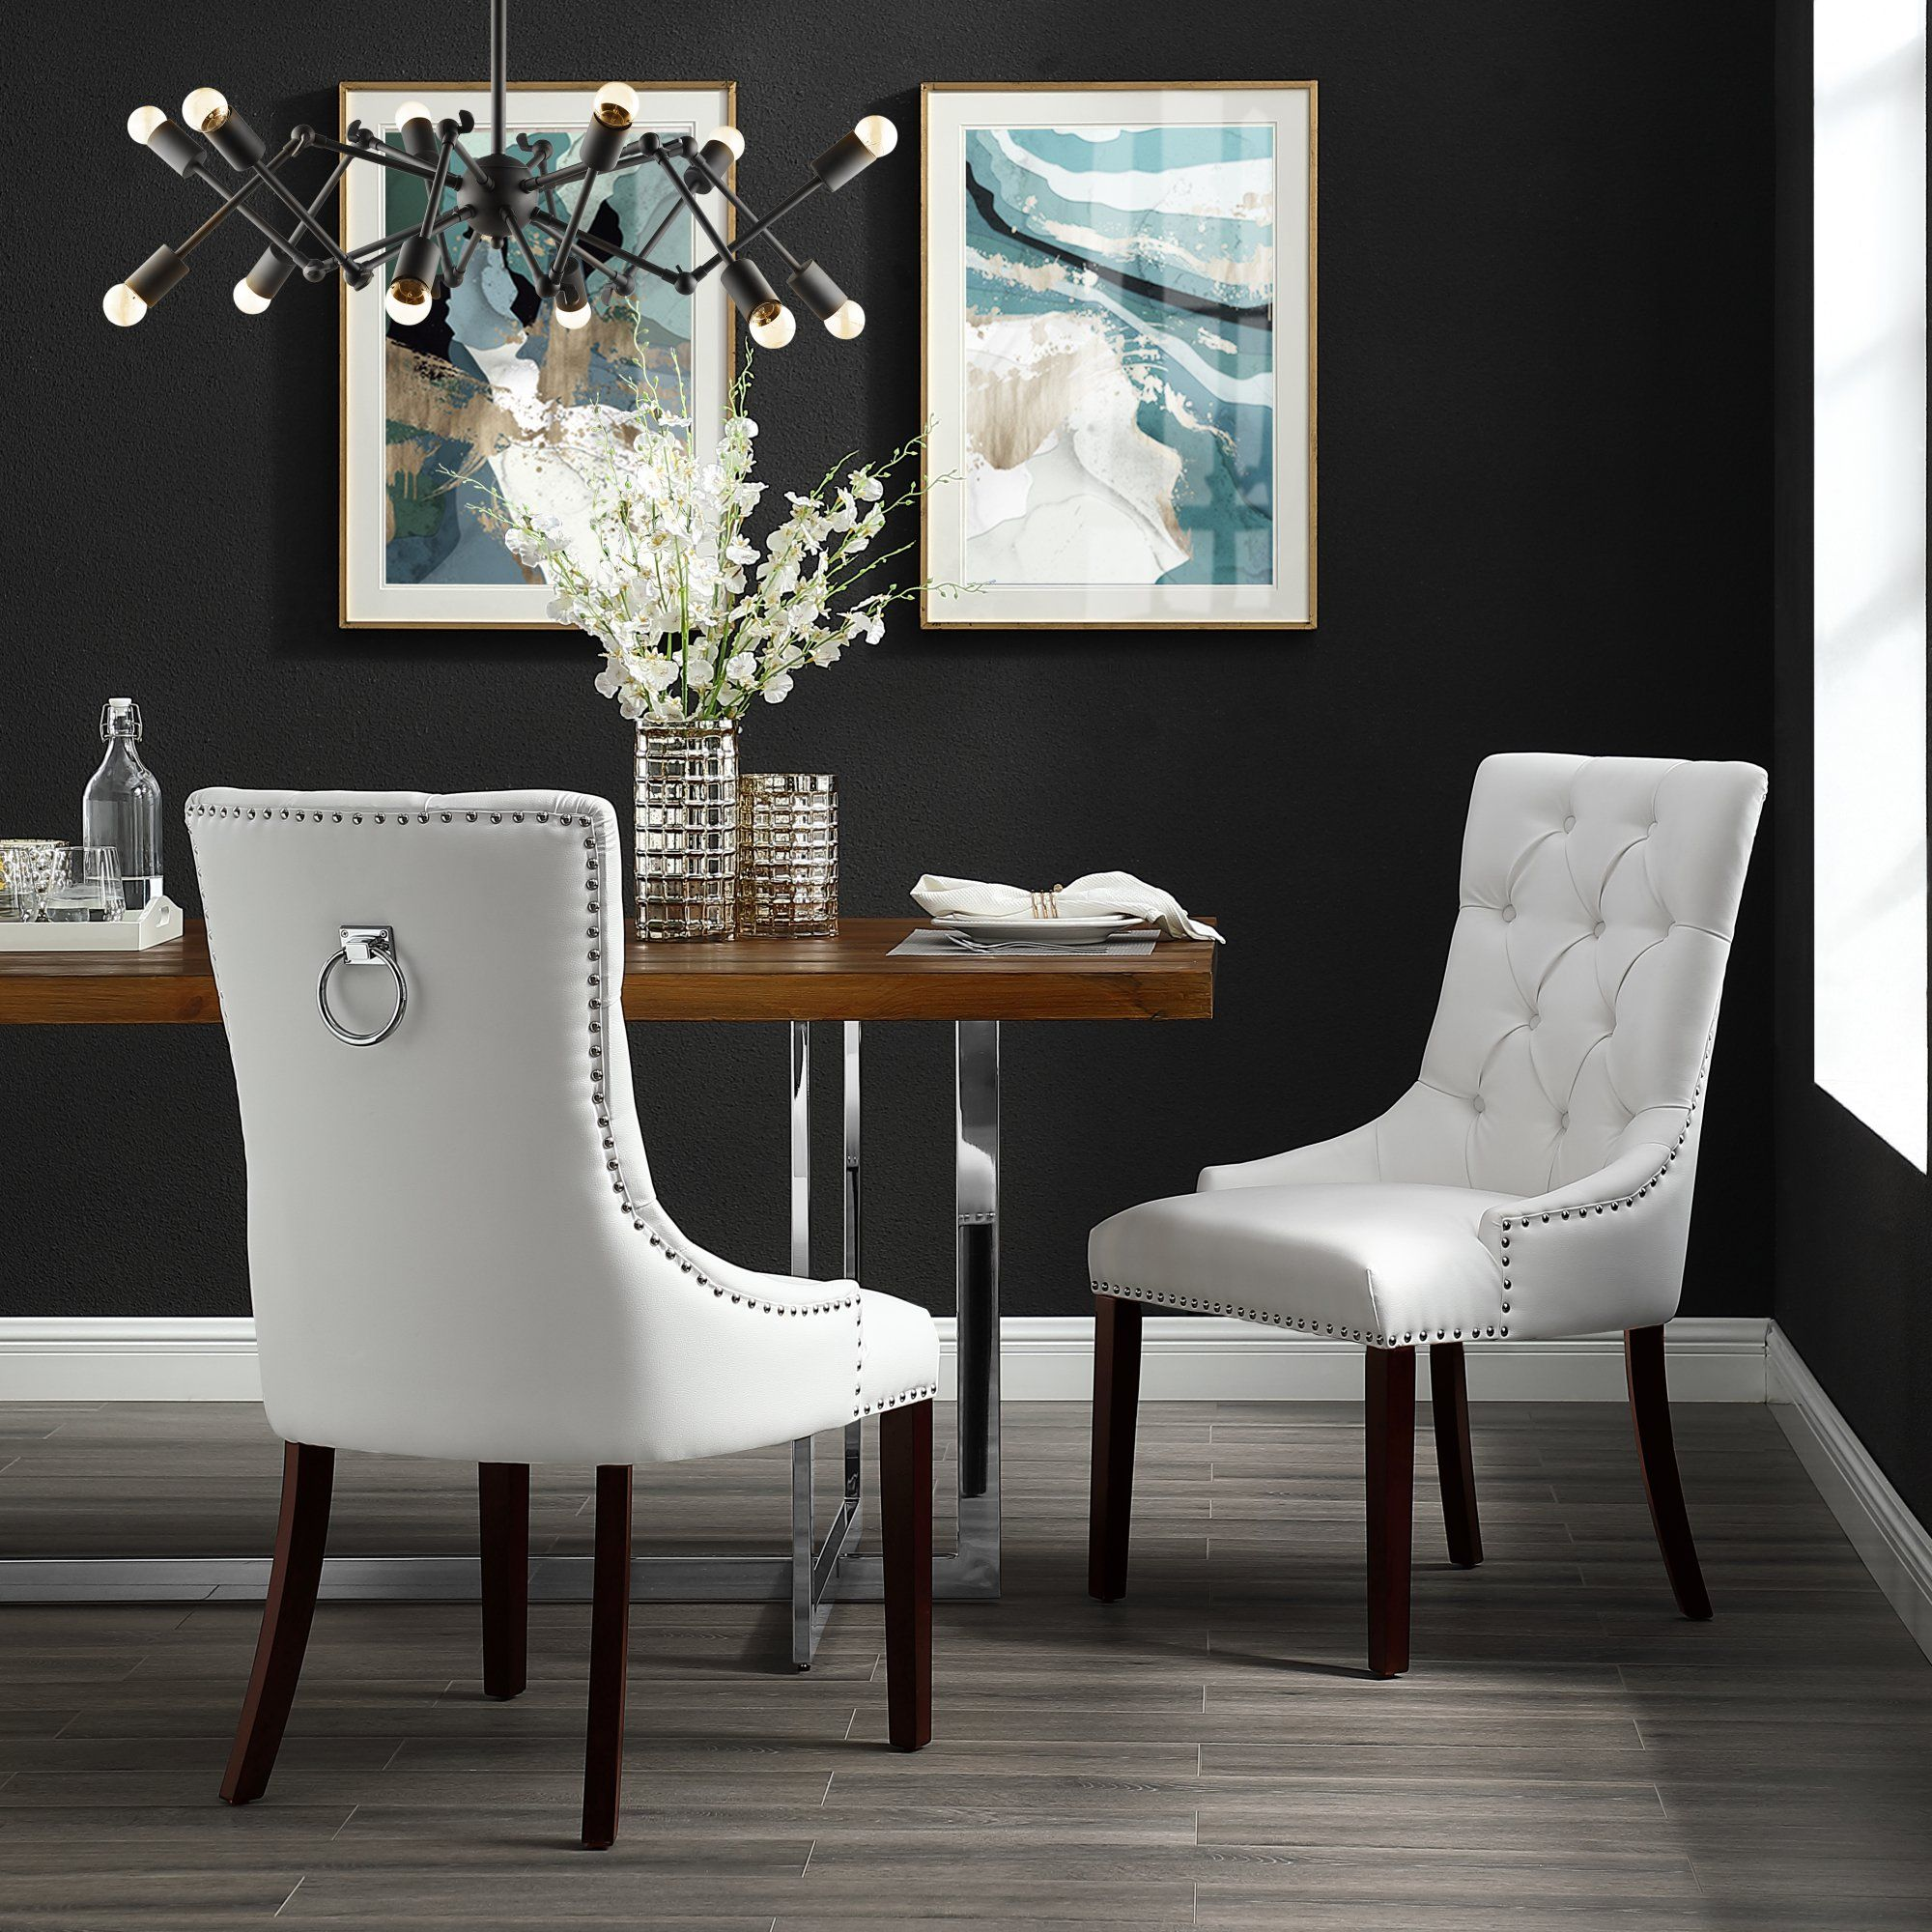 Inspired Home Faith Leather Pu Dining Chair Set Of 2 Tufted Ring Handle Chrome Nailhead Finish White Walmart Com Tufted Dining Chairs Dining Chairs Leather Dining